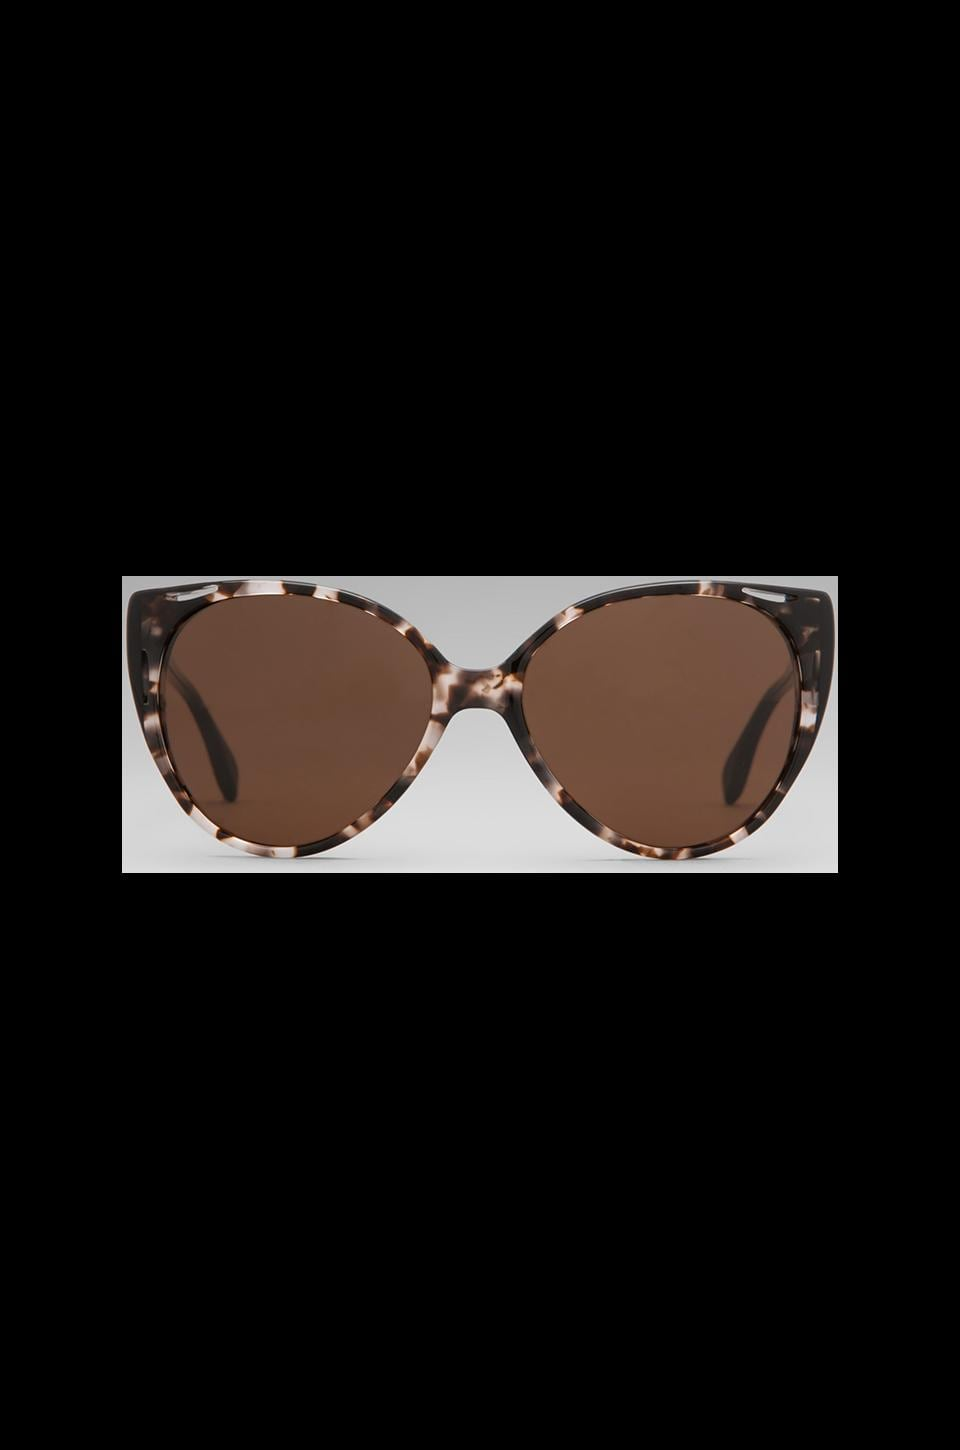 House of Harlow Tyler Sunglasses in Clear Tortoise